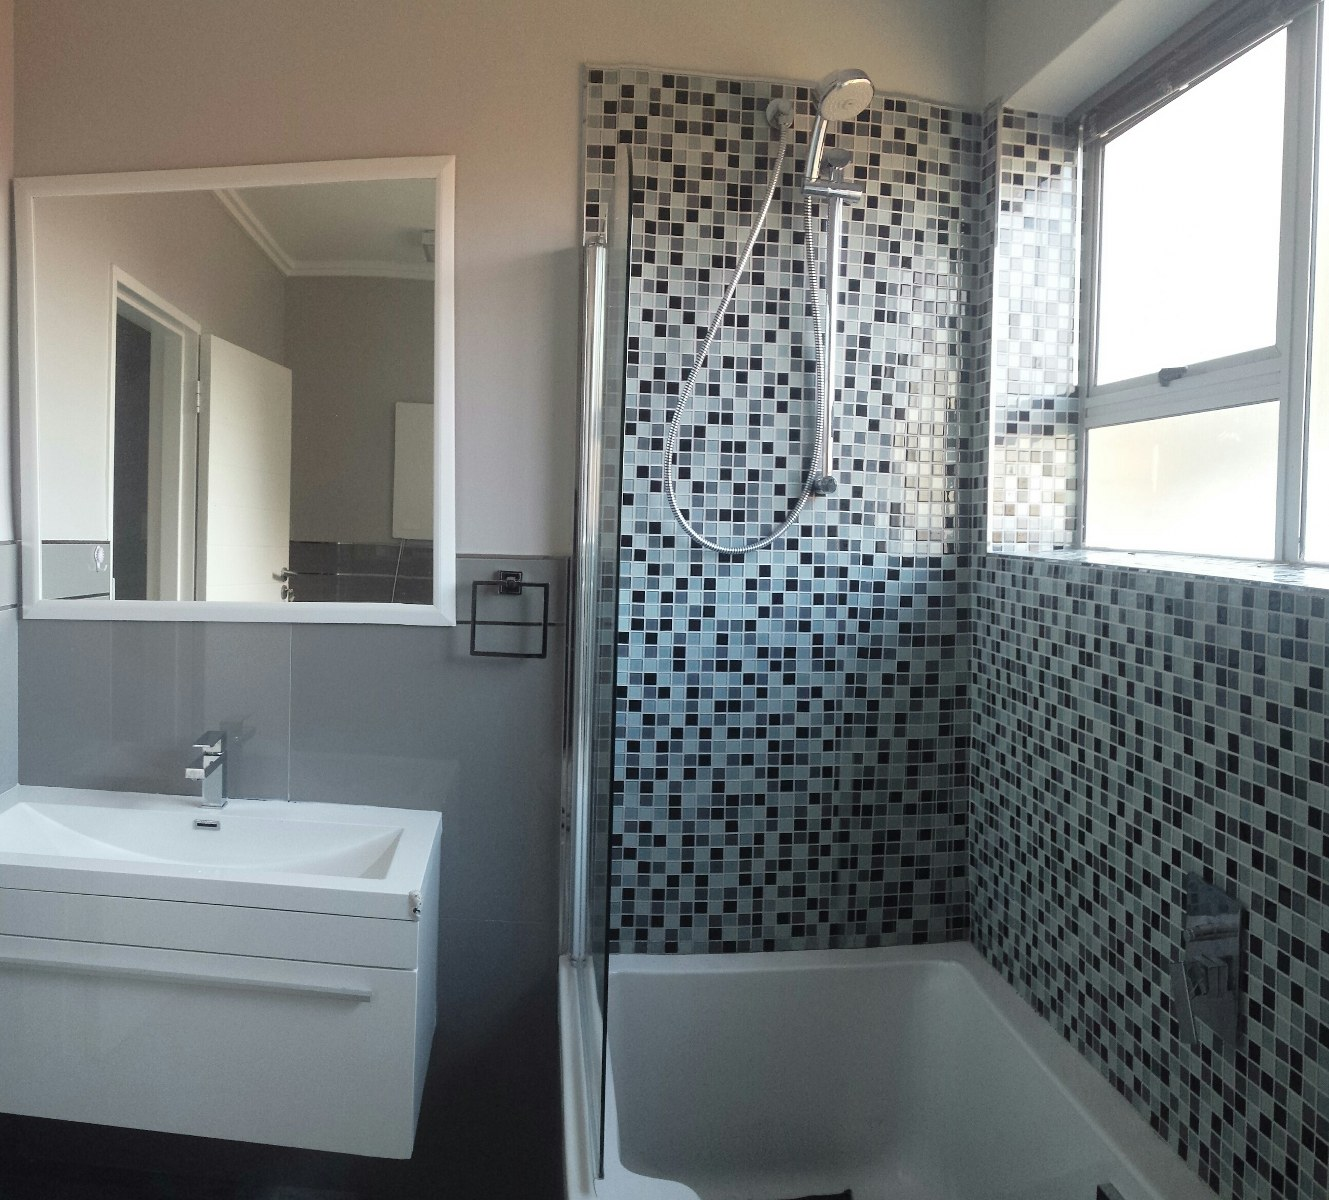 3 Bedroom Apartment for sale in Sea Point ENT0067155 : photo#12